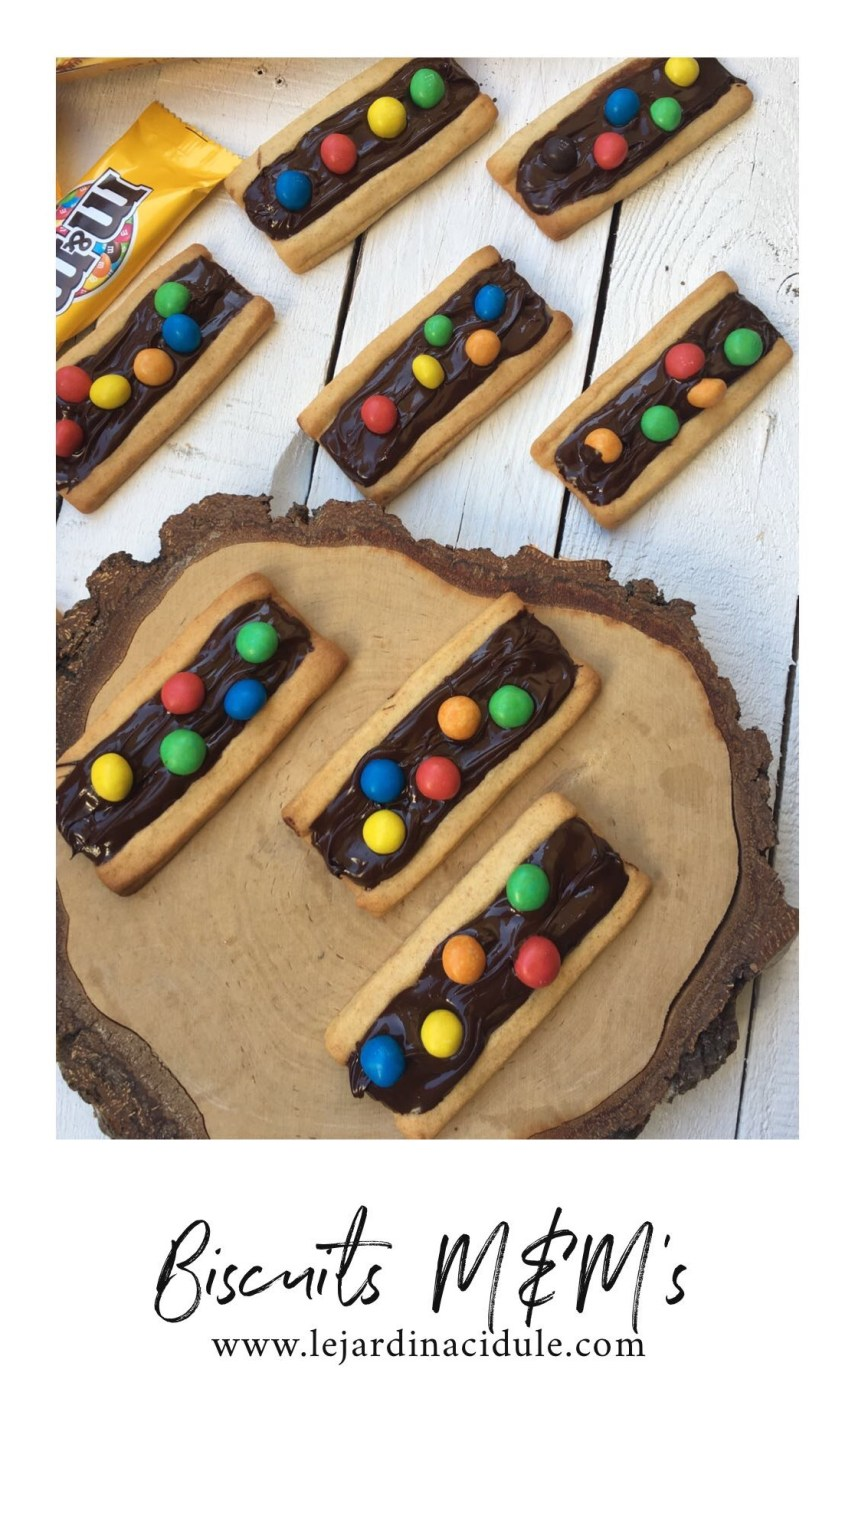 Biscuits M&M's